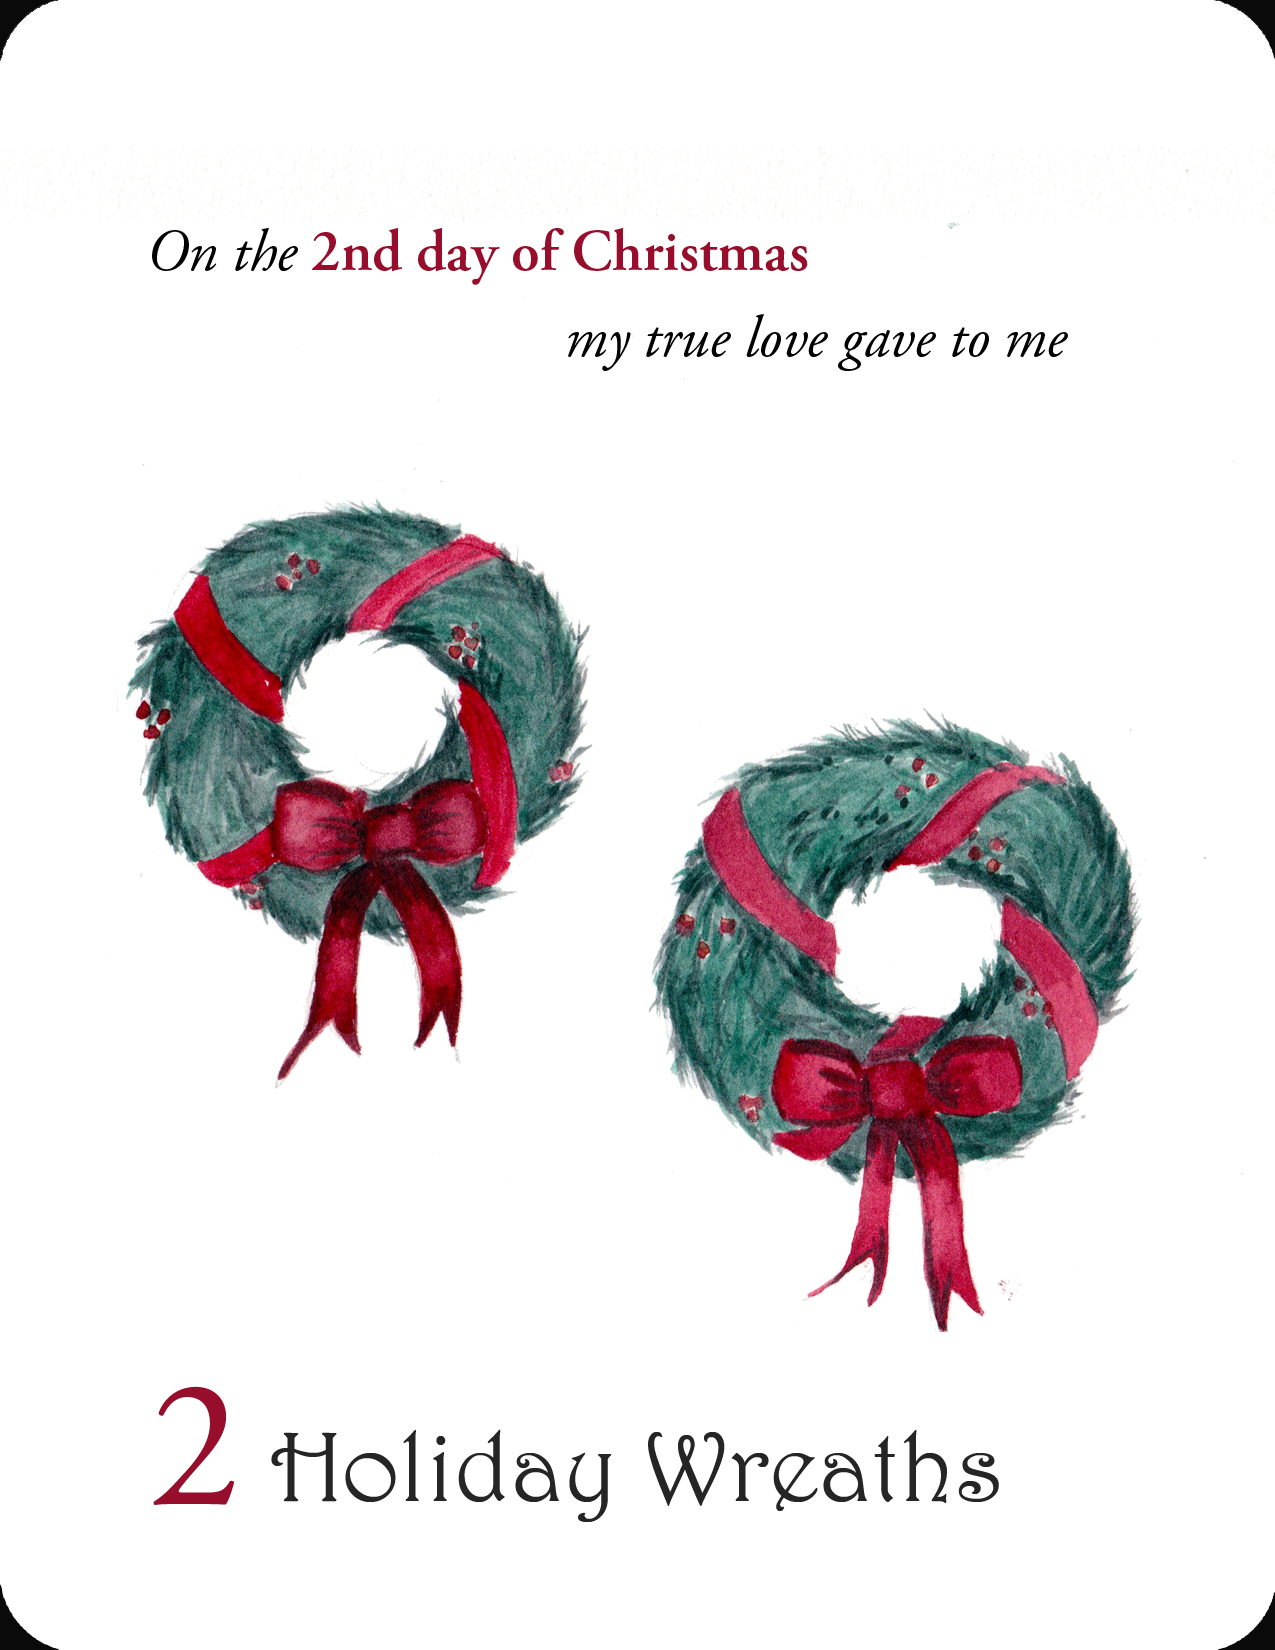 The 2nd in a set of the 12 Days of Christmas small note cards is 2 Holiday Wreaths